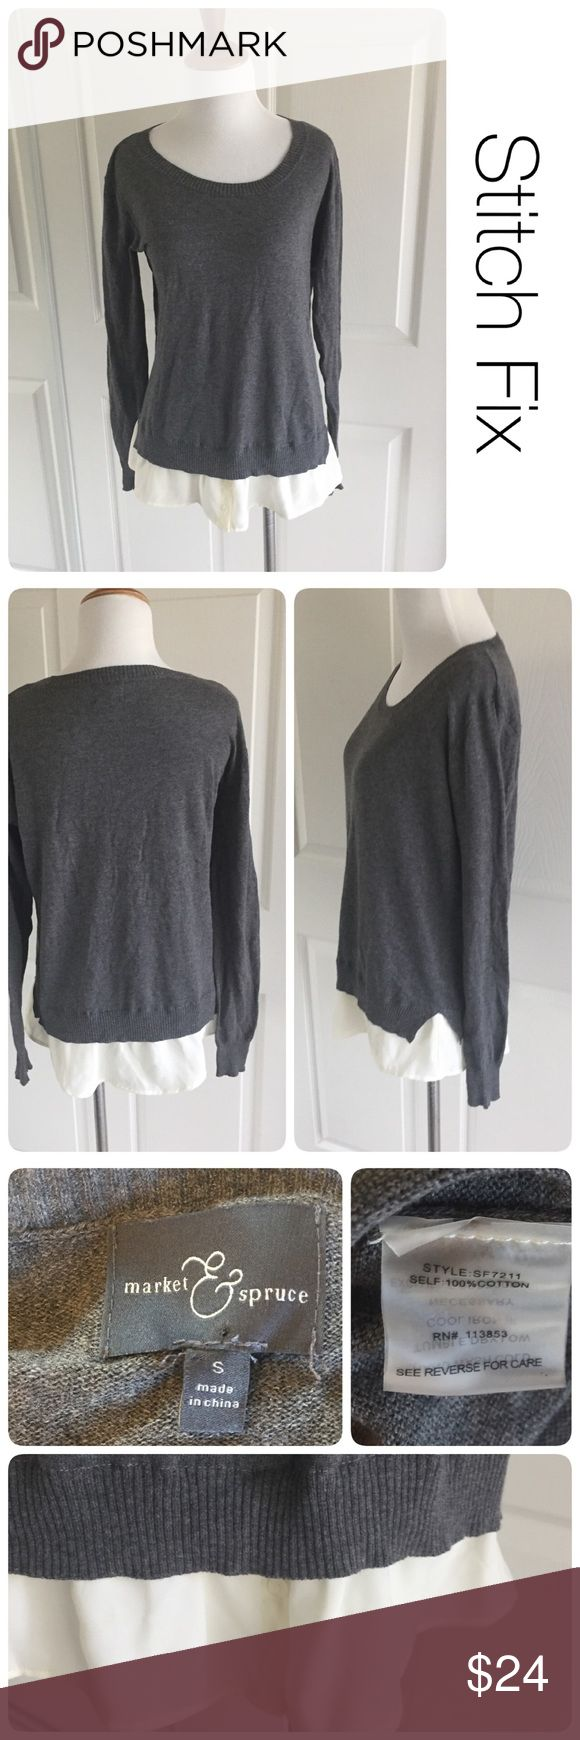 Stitch Fix Sweater w/ faux blouse by Market&Spruce ♦️Excellent condition. No holes, stains  and very minor piling.                                                 ♦️Materials- 100% cotton.      ♦️Measurements:                                  ♦️Laying flat armpit to armpit: approximately 18.5 inches                                               ♦️Laying flat from the back of the neck to the bottom of the front hem is approximately 24 inches Stitch Fix Sweaters Crew & Scoop Necks